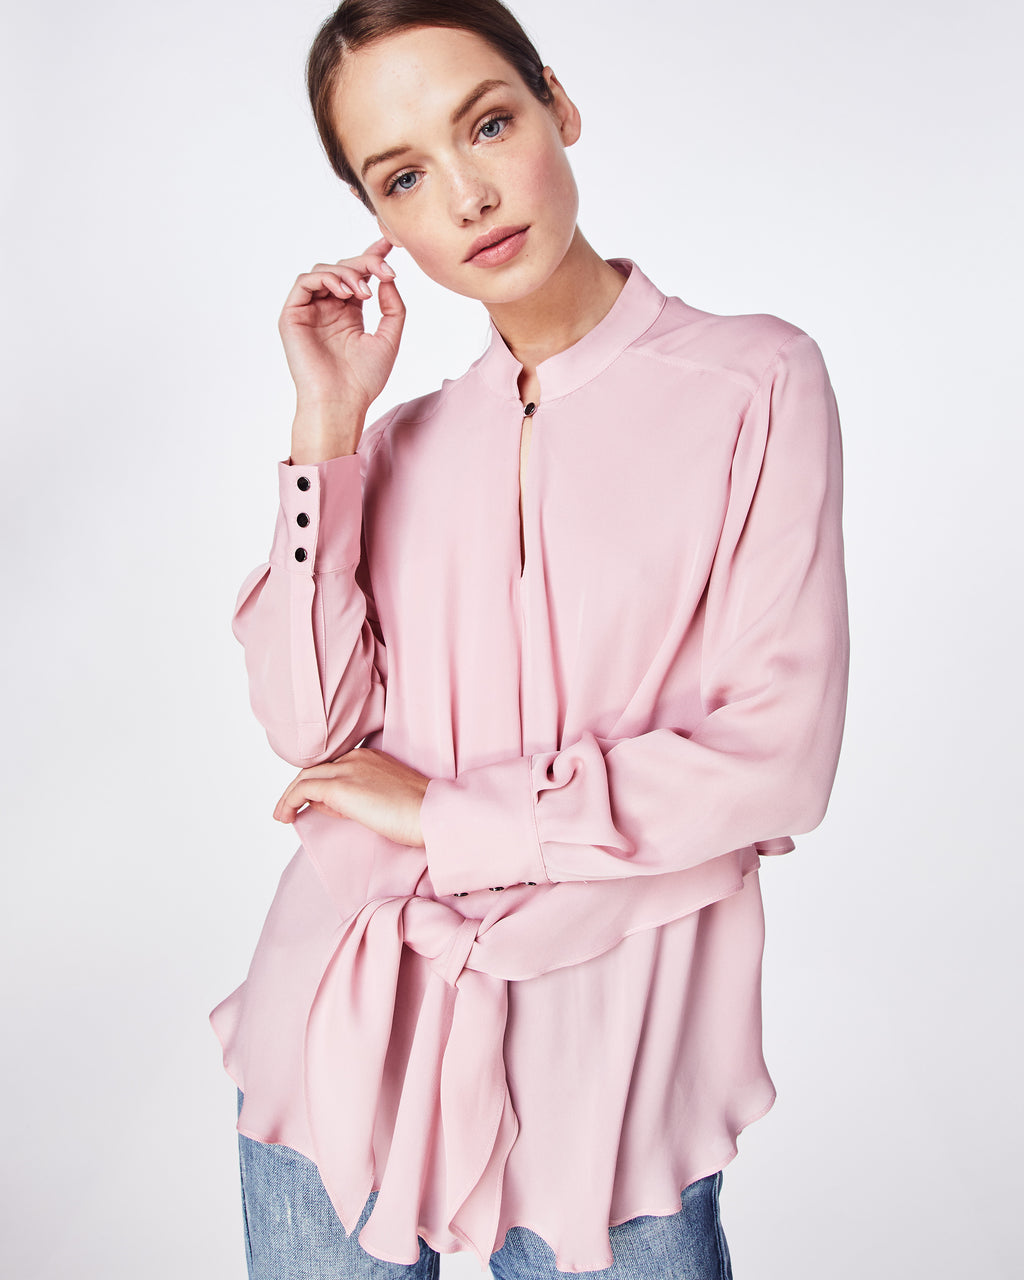 BK10272 - SOLID SILK BLEND TIE BLOUSE - tops - blouses - FOR WHEN YOU WANT TO FEEL POLISHED AND DRESSY, THIS SILK TOP IS YOUR GO TO. ITS SHEER, SILKY MATERIAL AND TIE FRONT GIVES A BEAUTIFUL DRAPEY LOOK.